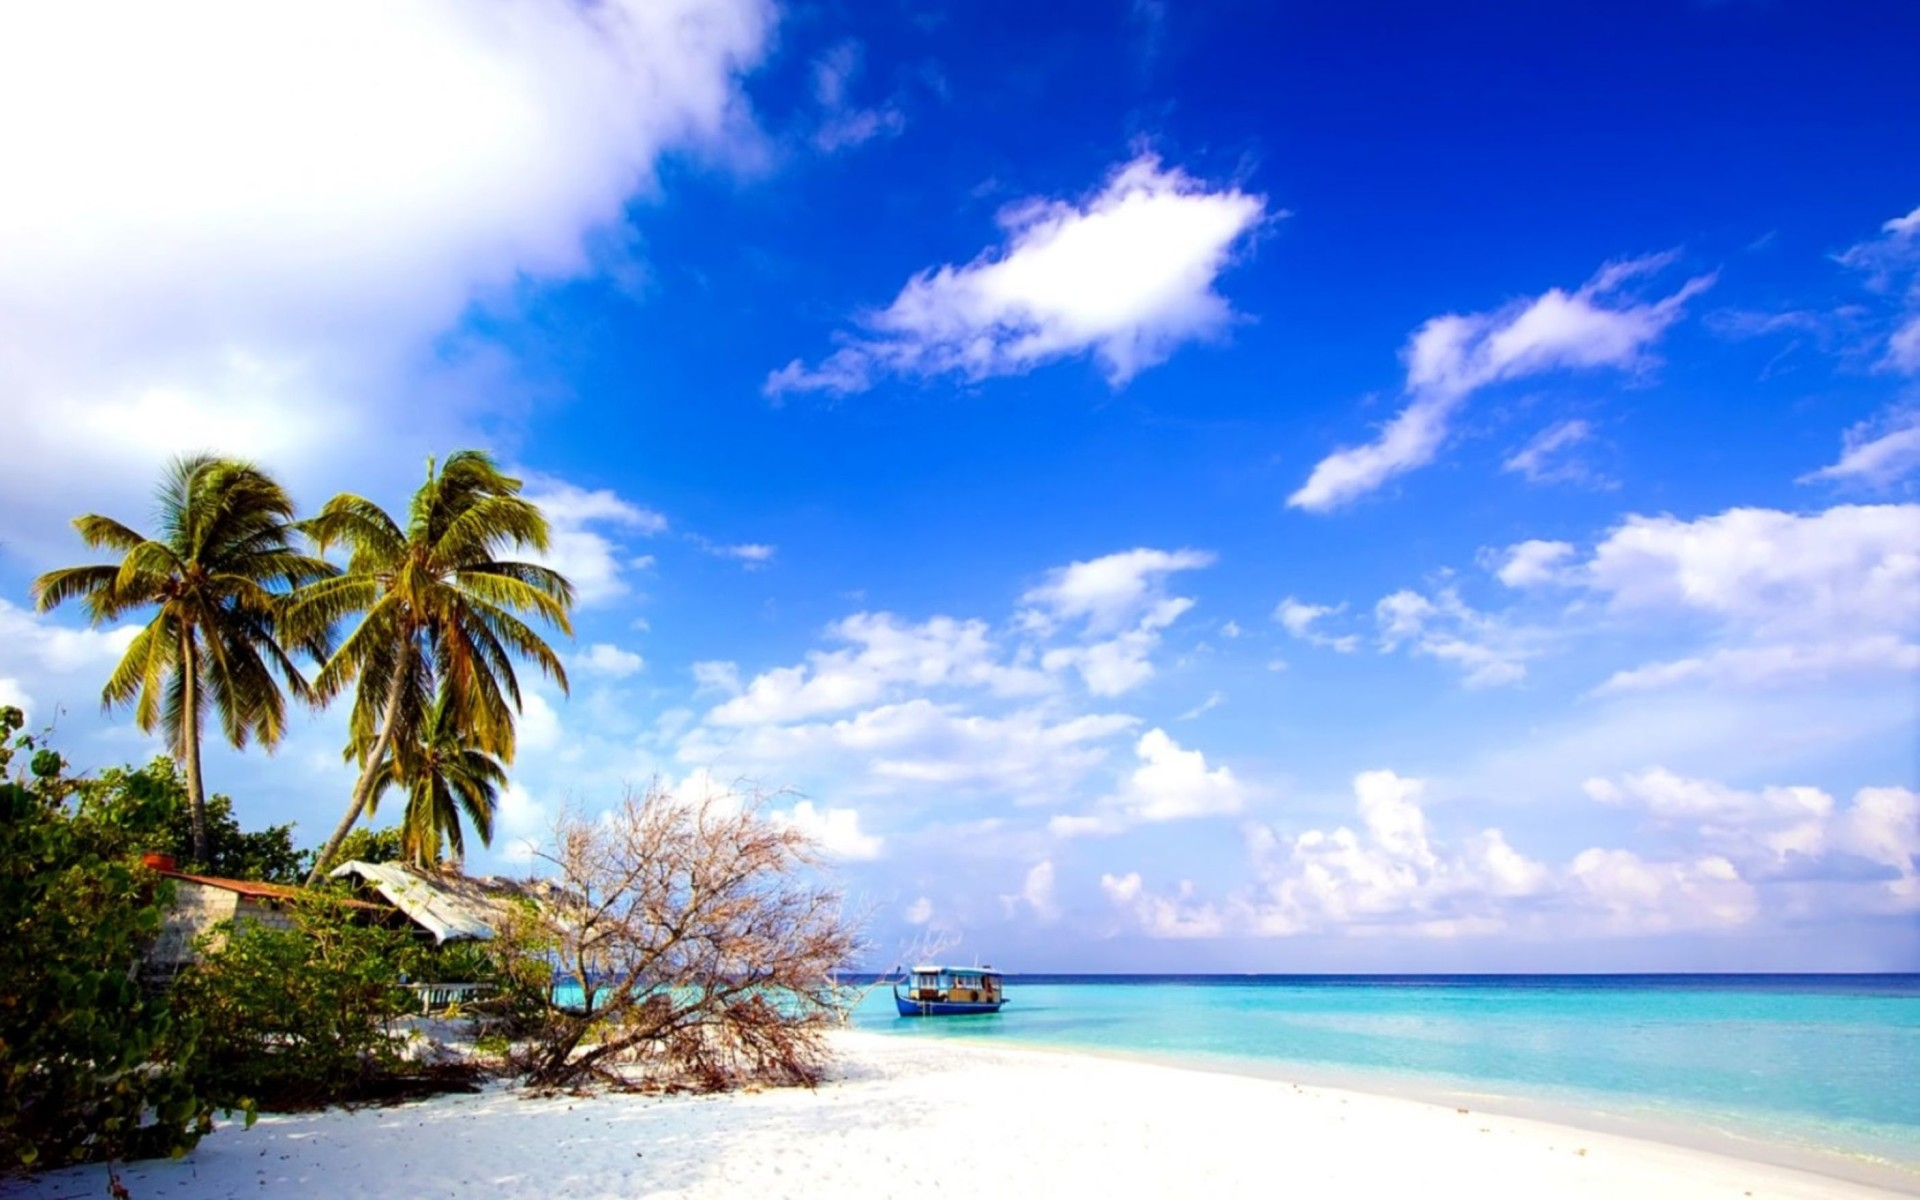 Beach Blue Sky PC Wallpaper